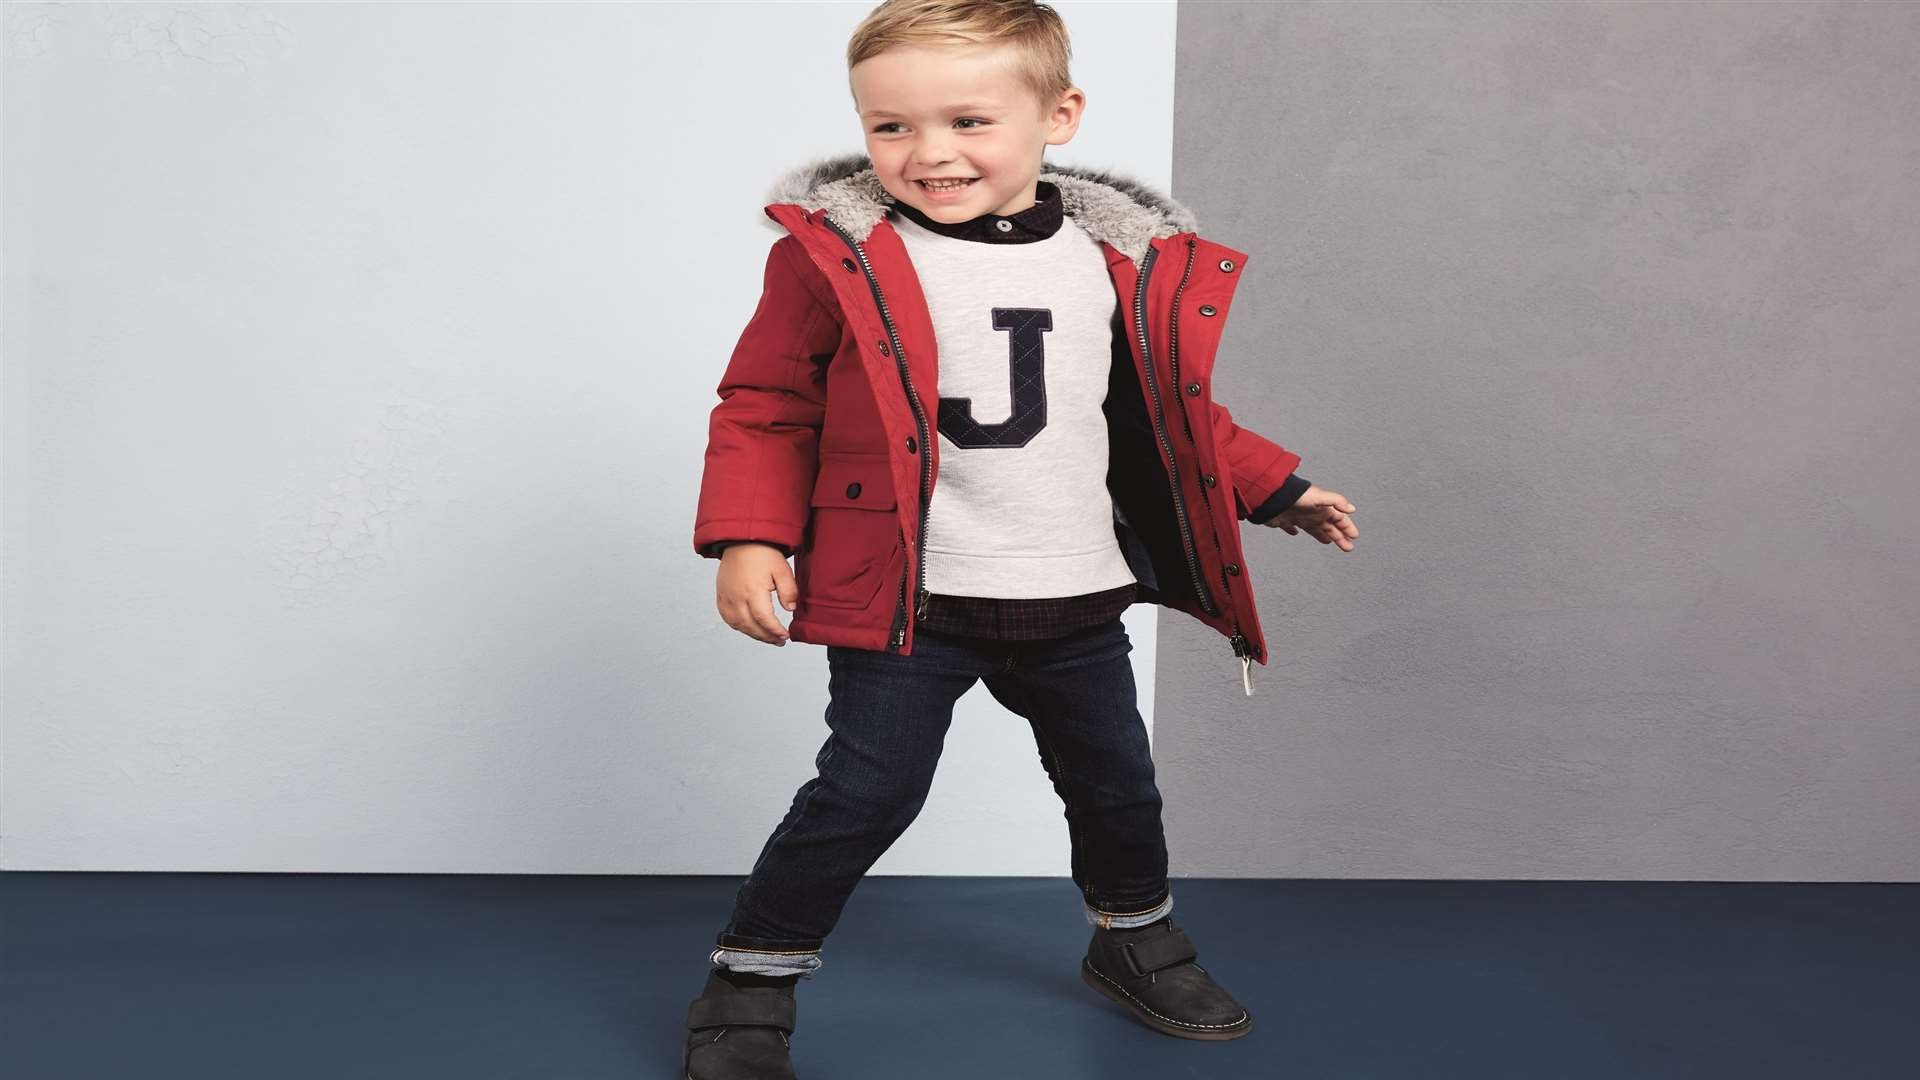 J by Jasper Conran at Debenhams